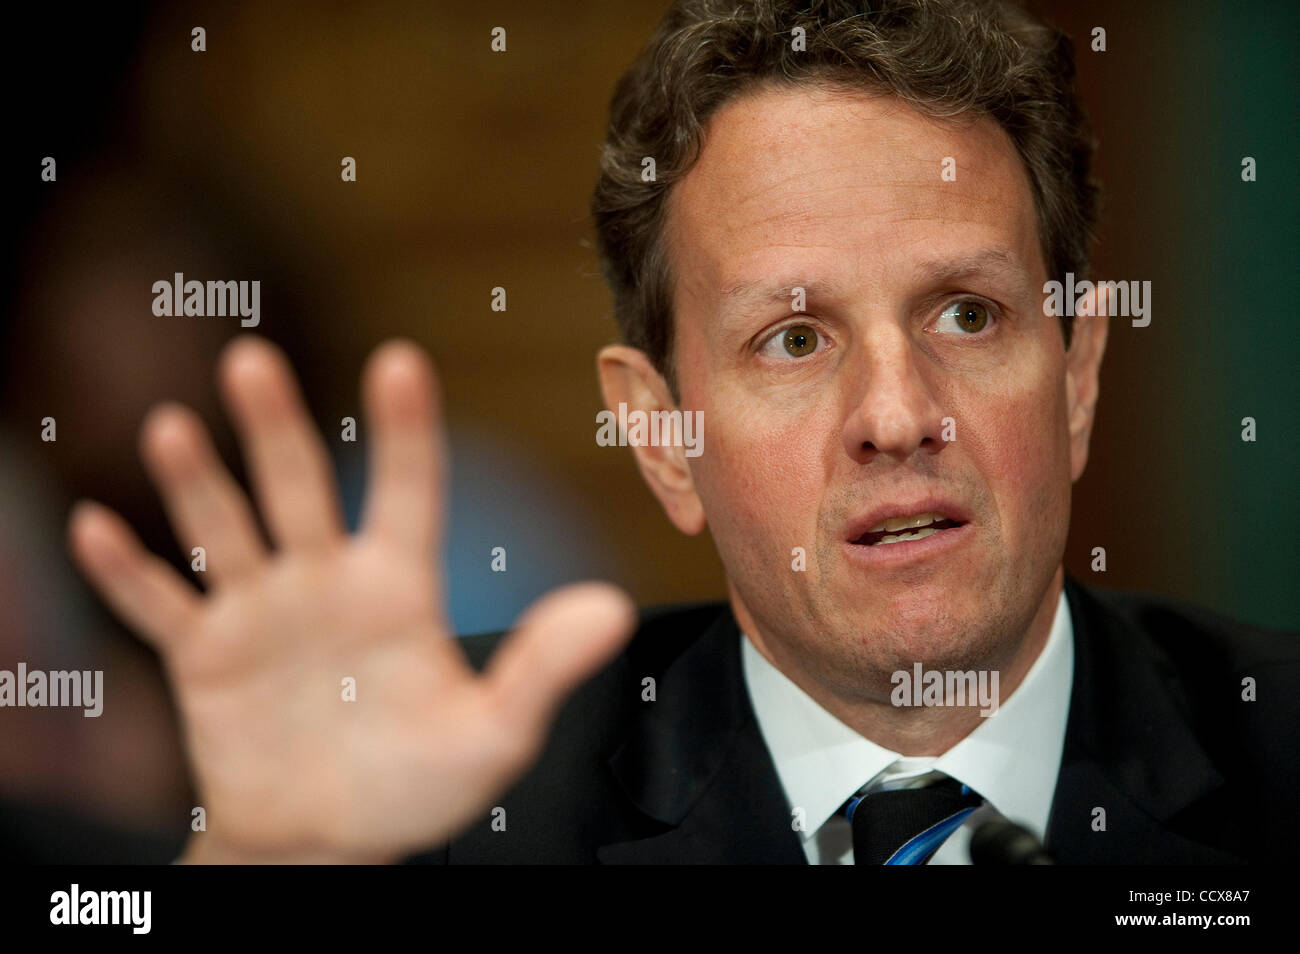 May 6,2010 - Washington, District of Columbia USA - U.S. Deparment of the Treasury Secretary Timothy Geithner appears - Stock Image